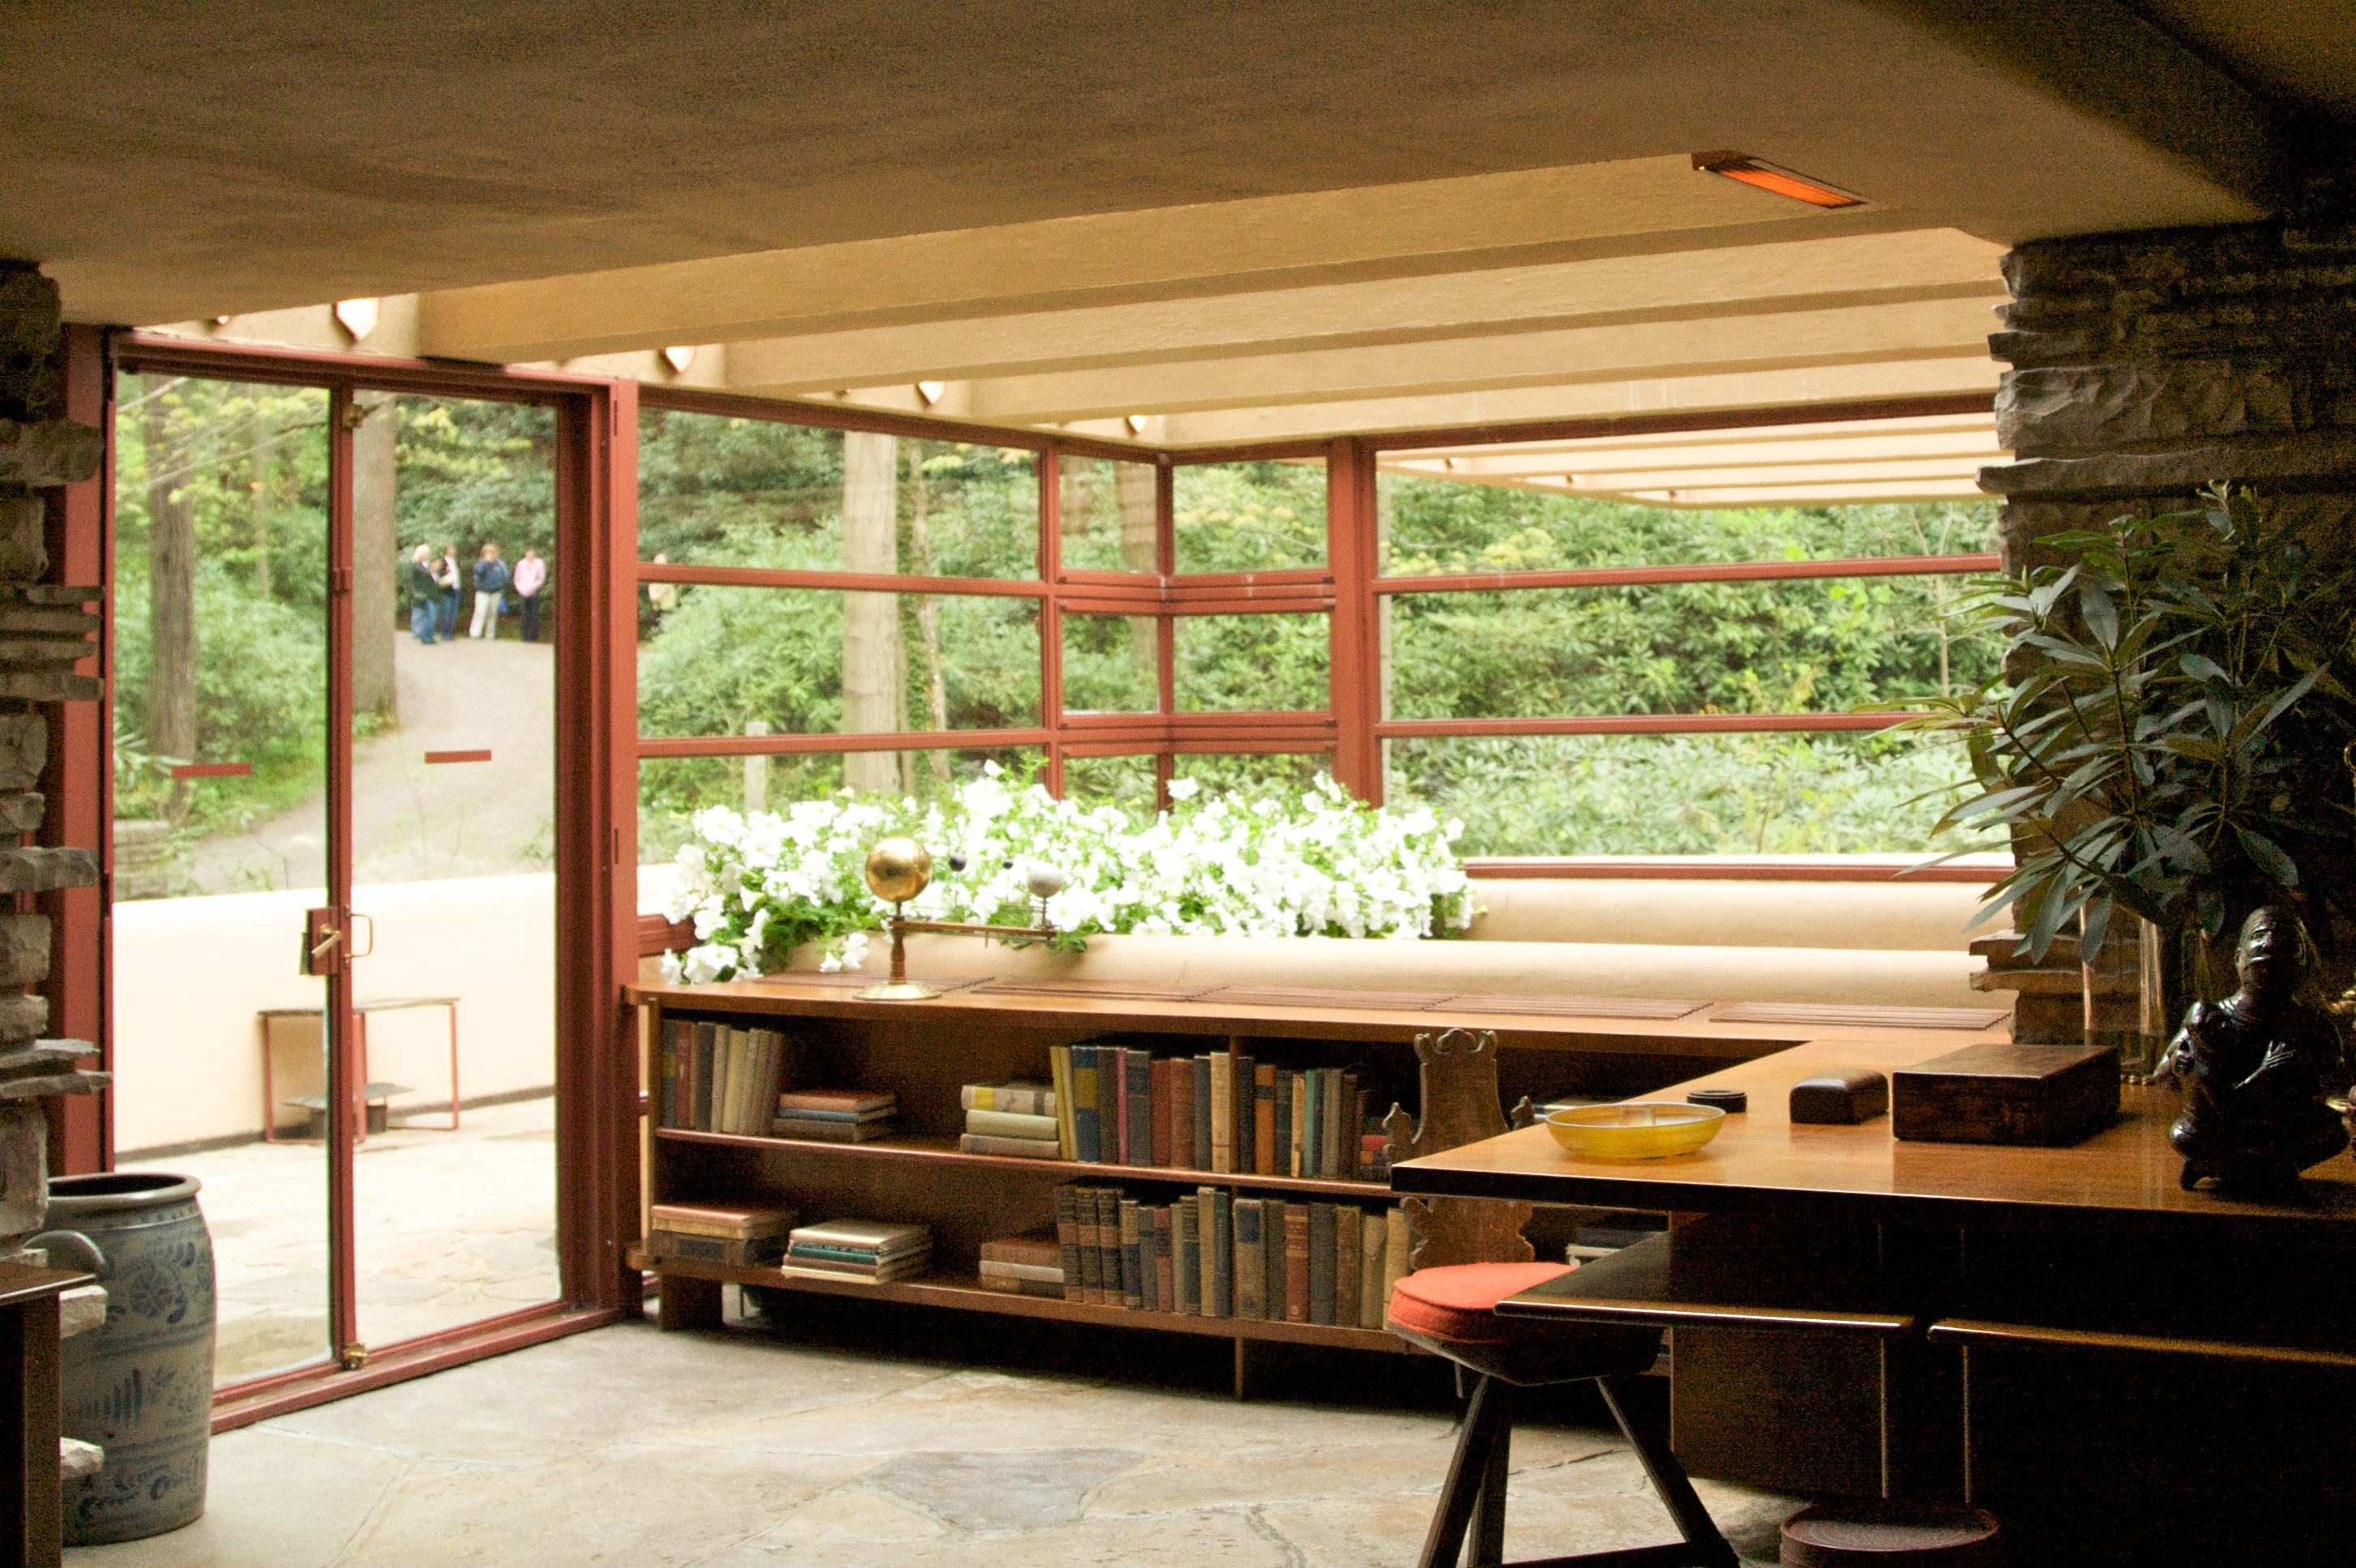 Frank lloyd wright living room windows and doors · large windows entrance